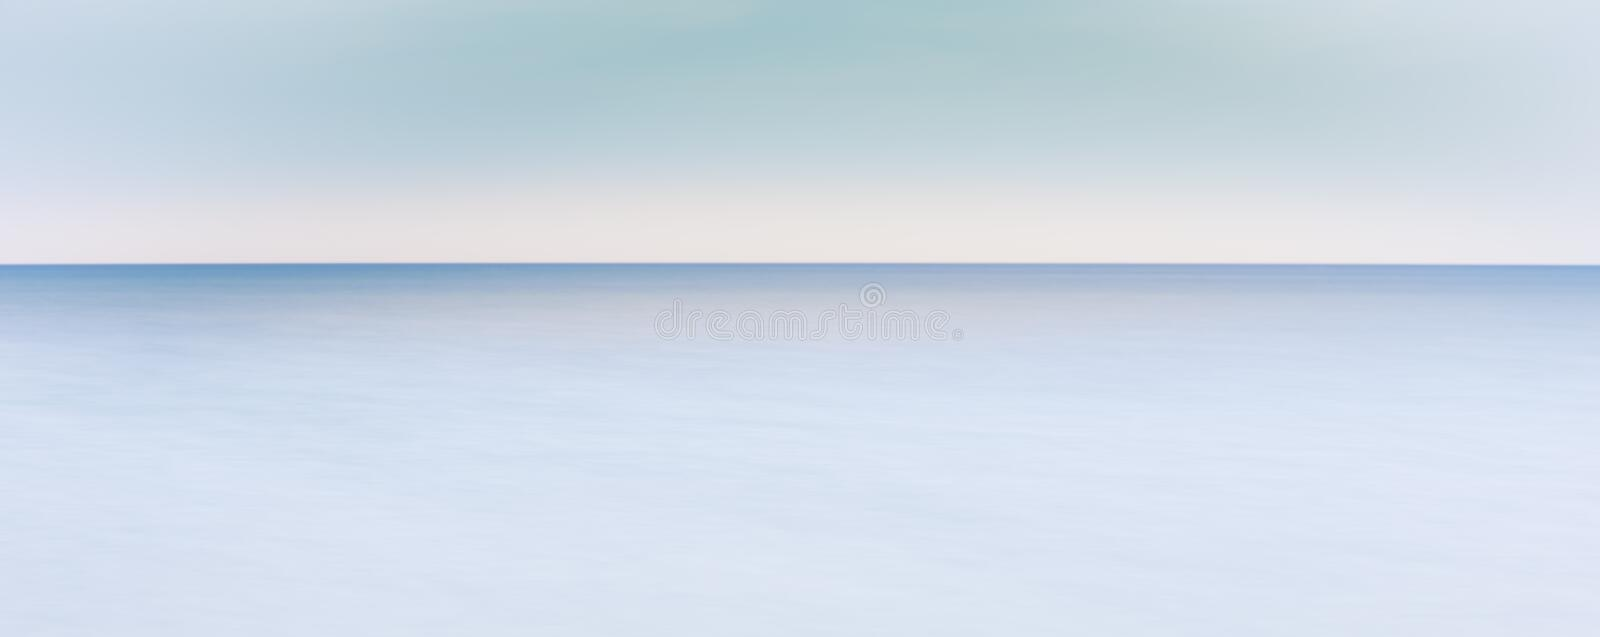 Peaceful ocean horizon - where horizon line meets sea royalty free stock image